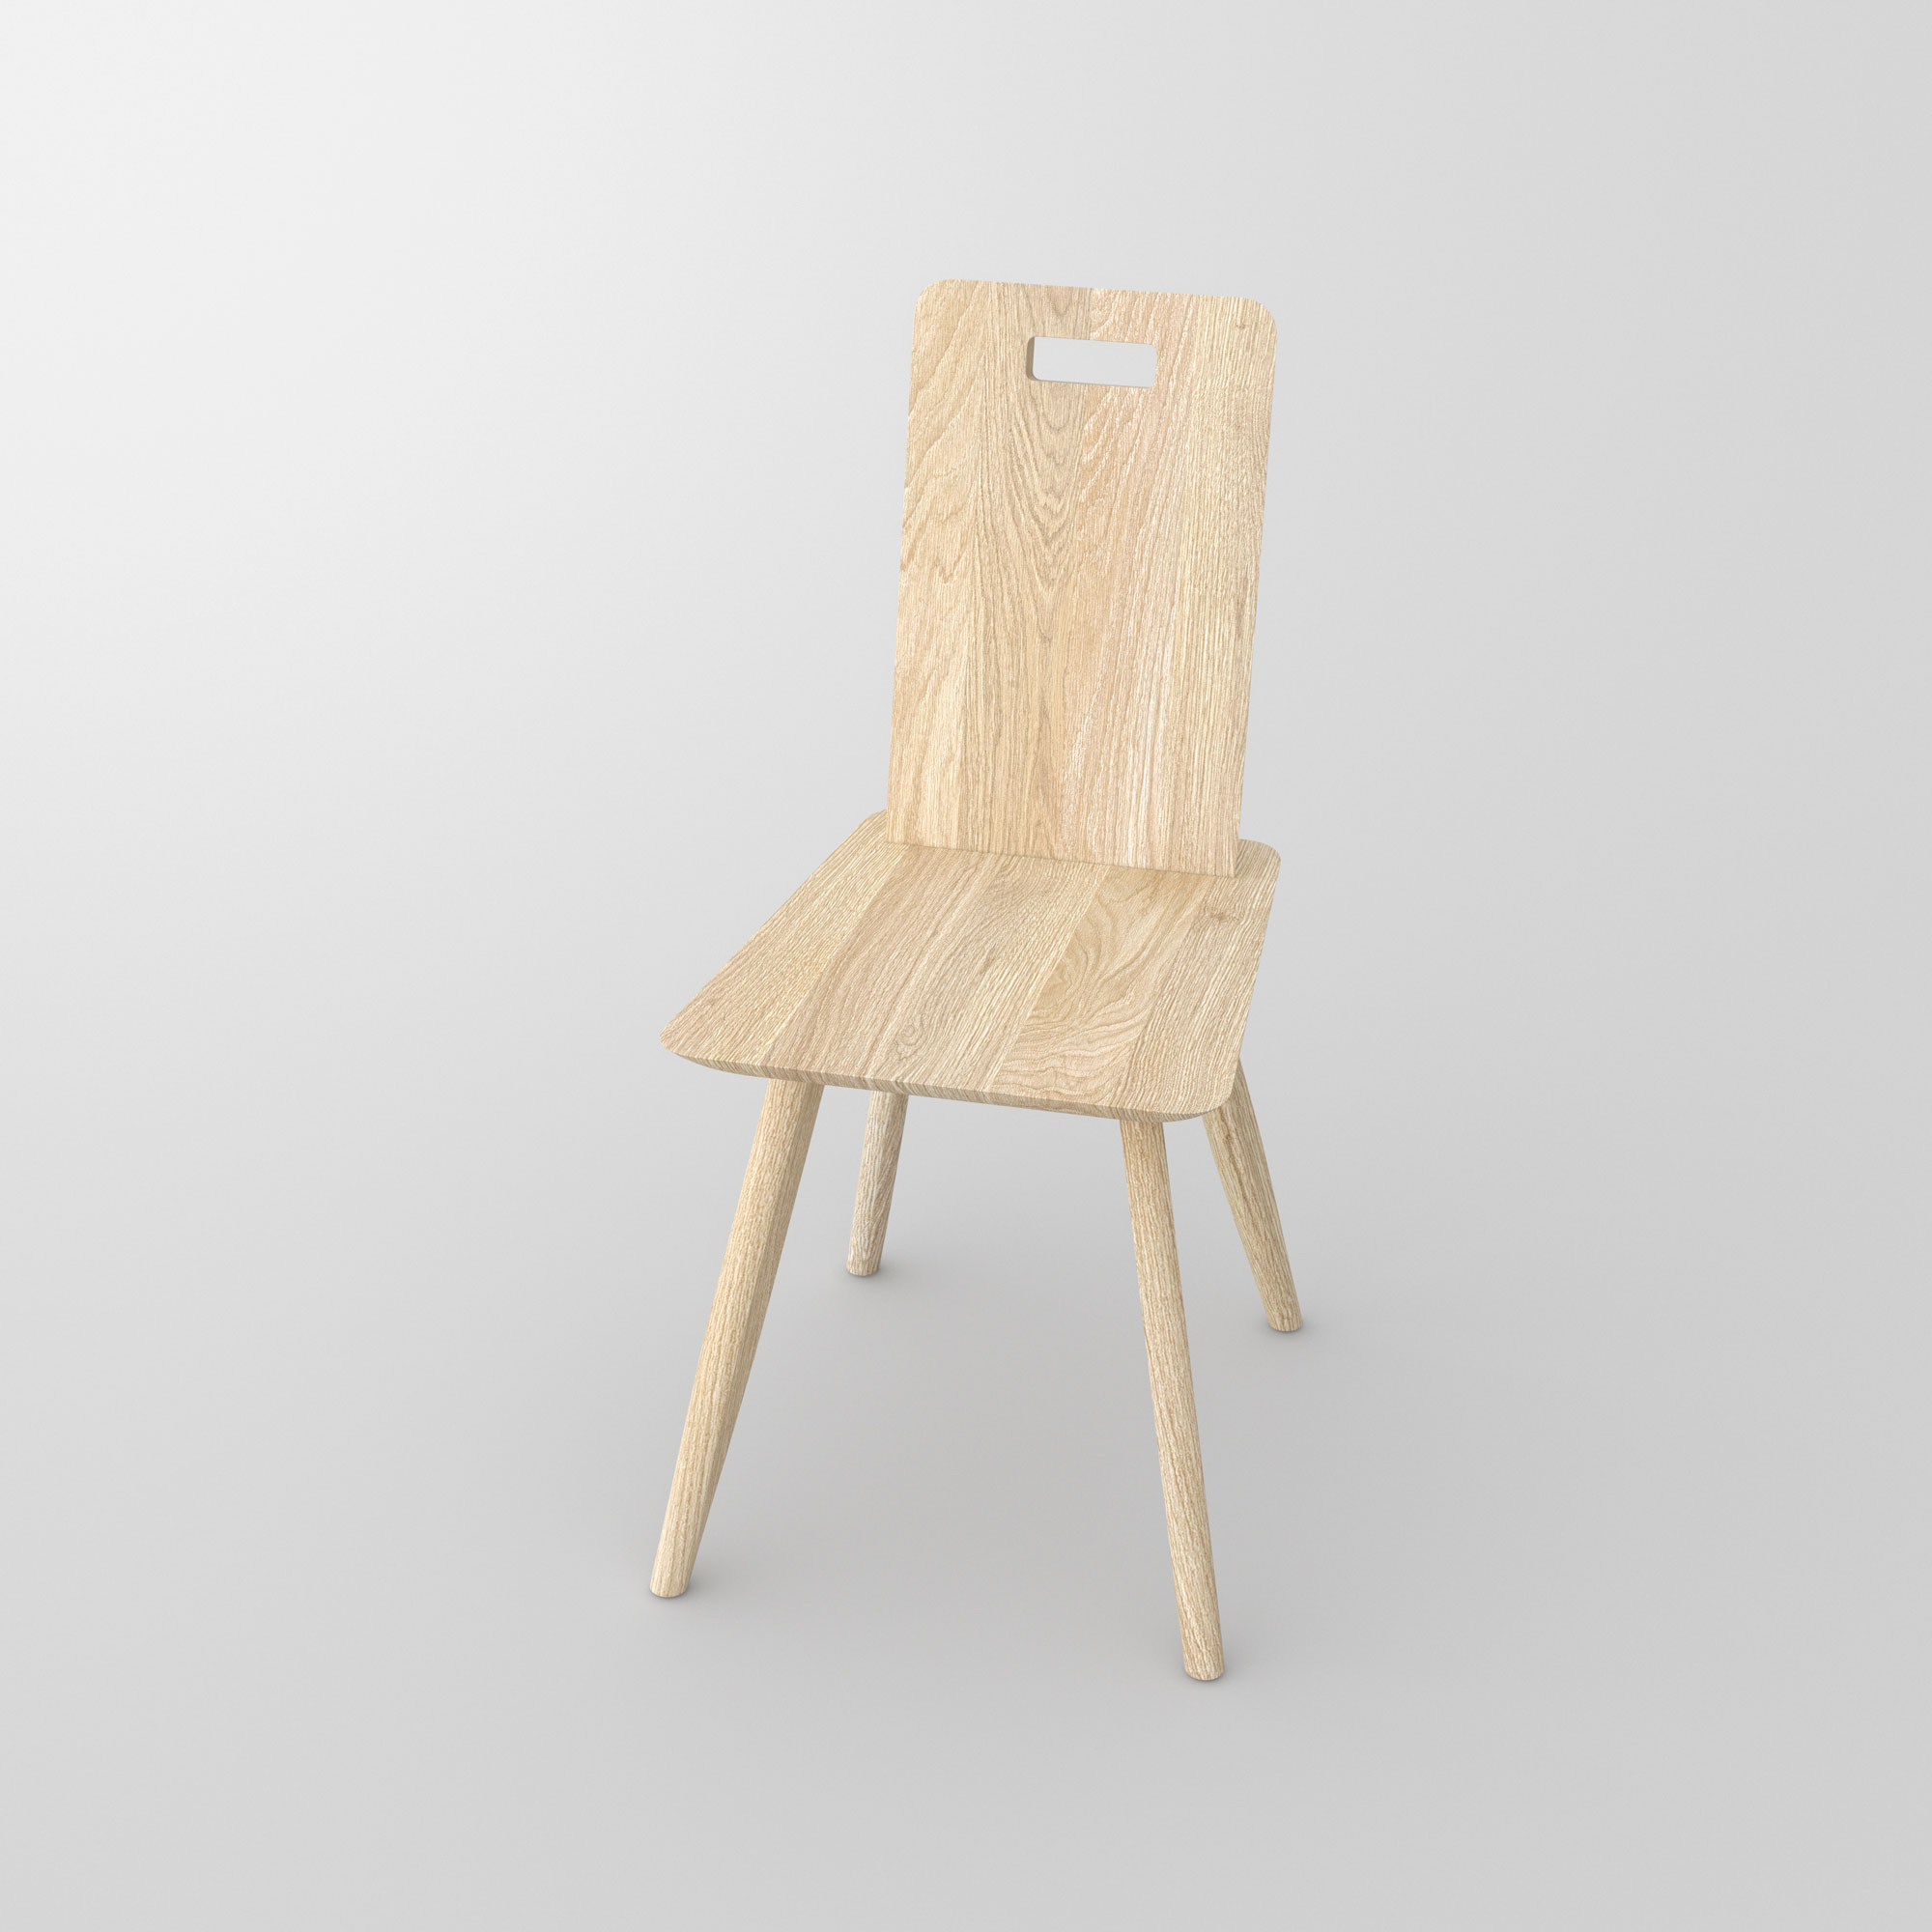 Designer Chair AETAS vitamin-design custom made in solid wood by vitamin design